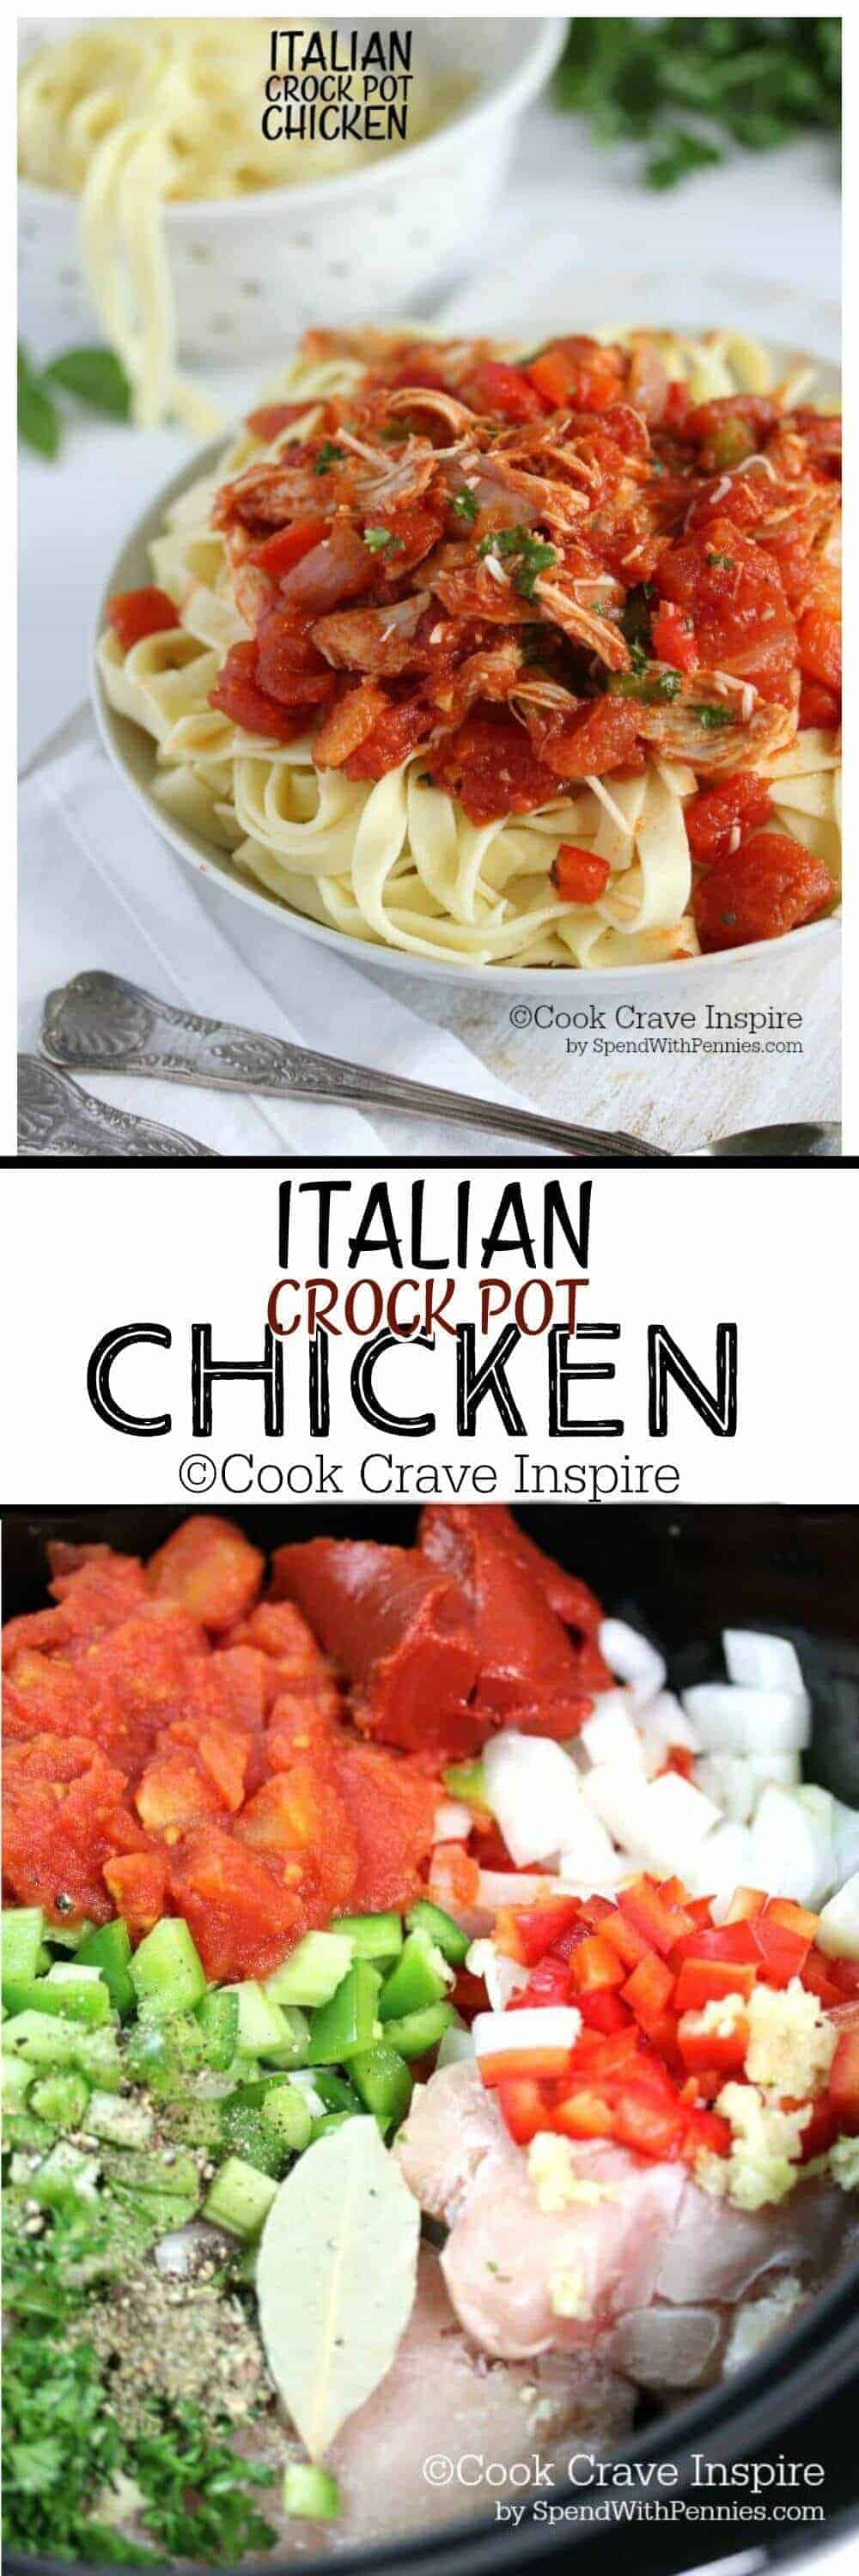 This Italian Crock Pot Chicken is easy to make and tastes delicious! Tender chicken in a zesty tomato sauce loaded with veggies and seasonings... perfect over pasta!